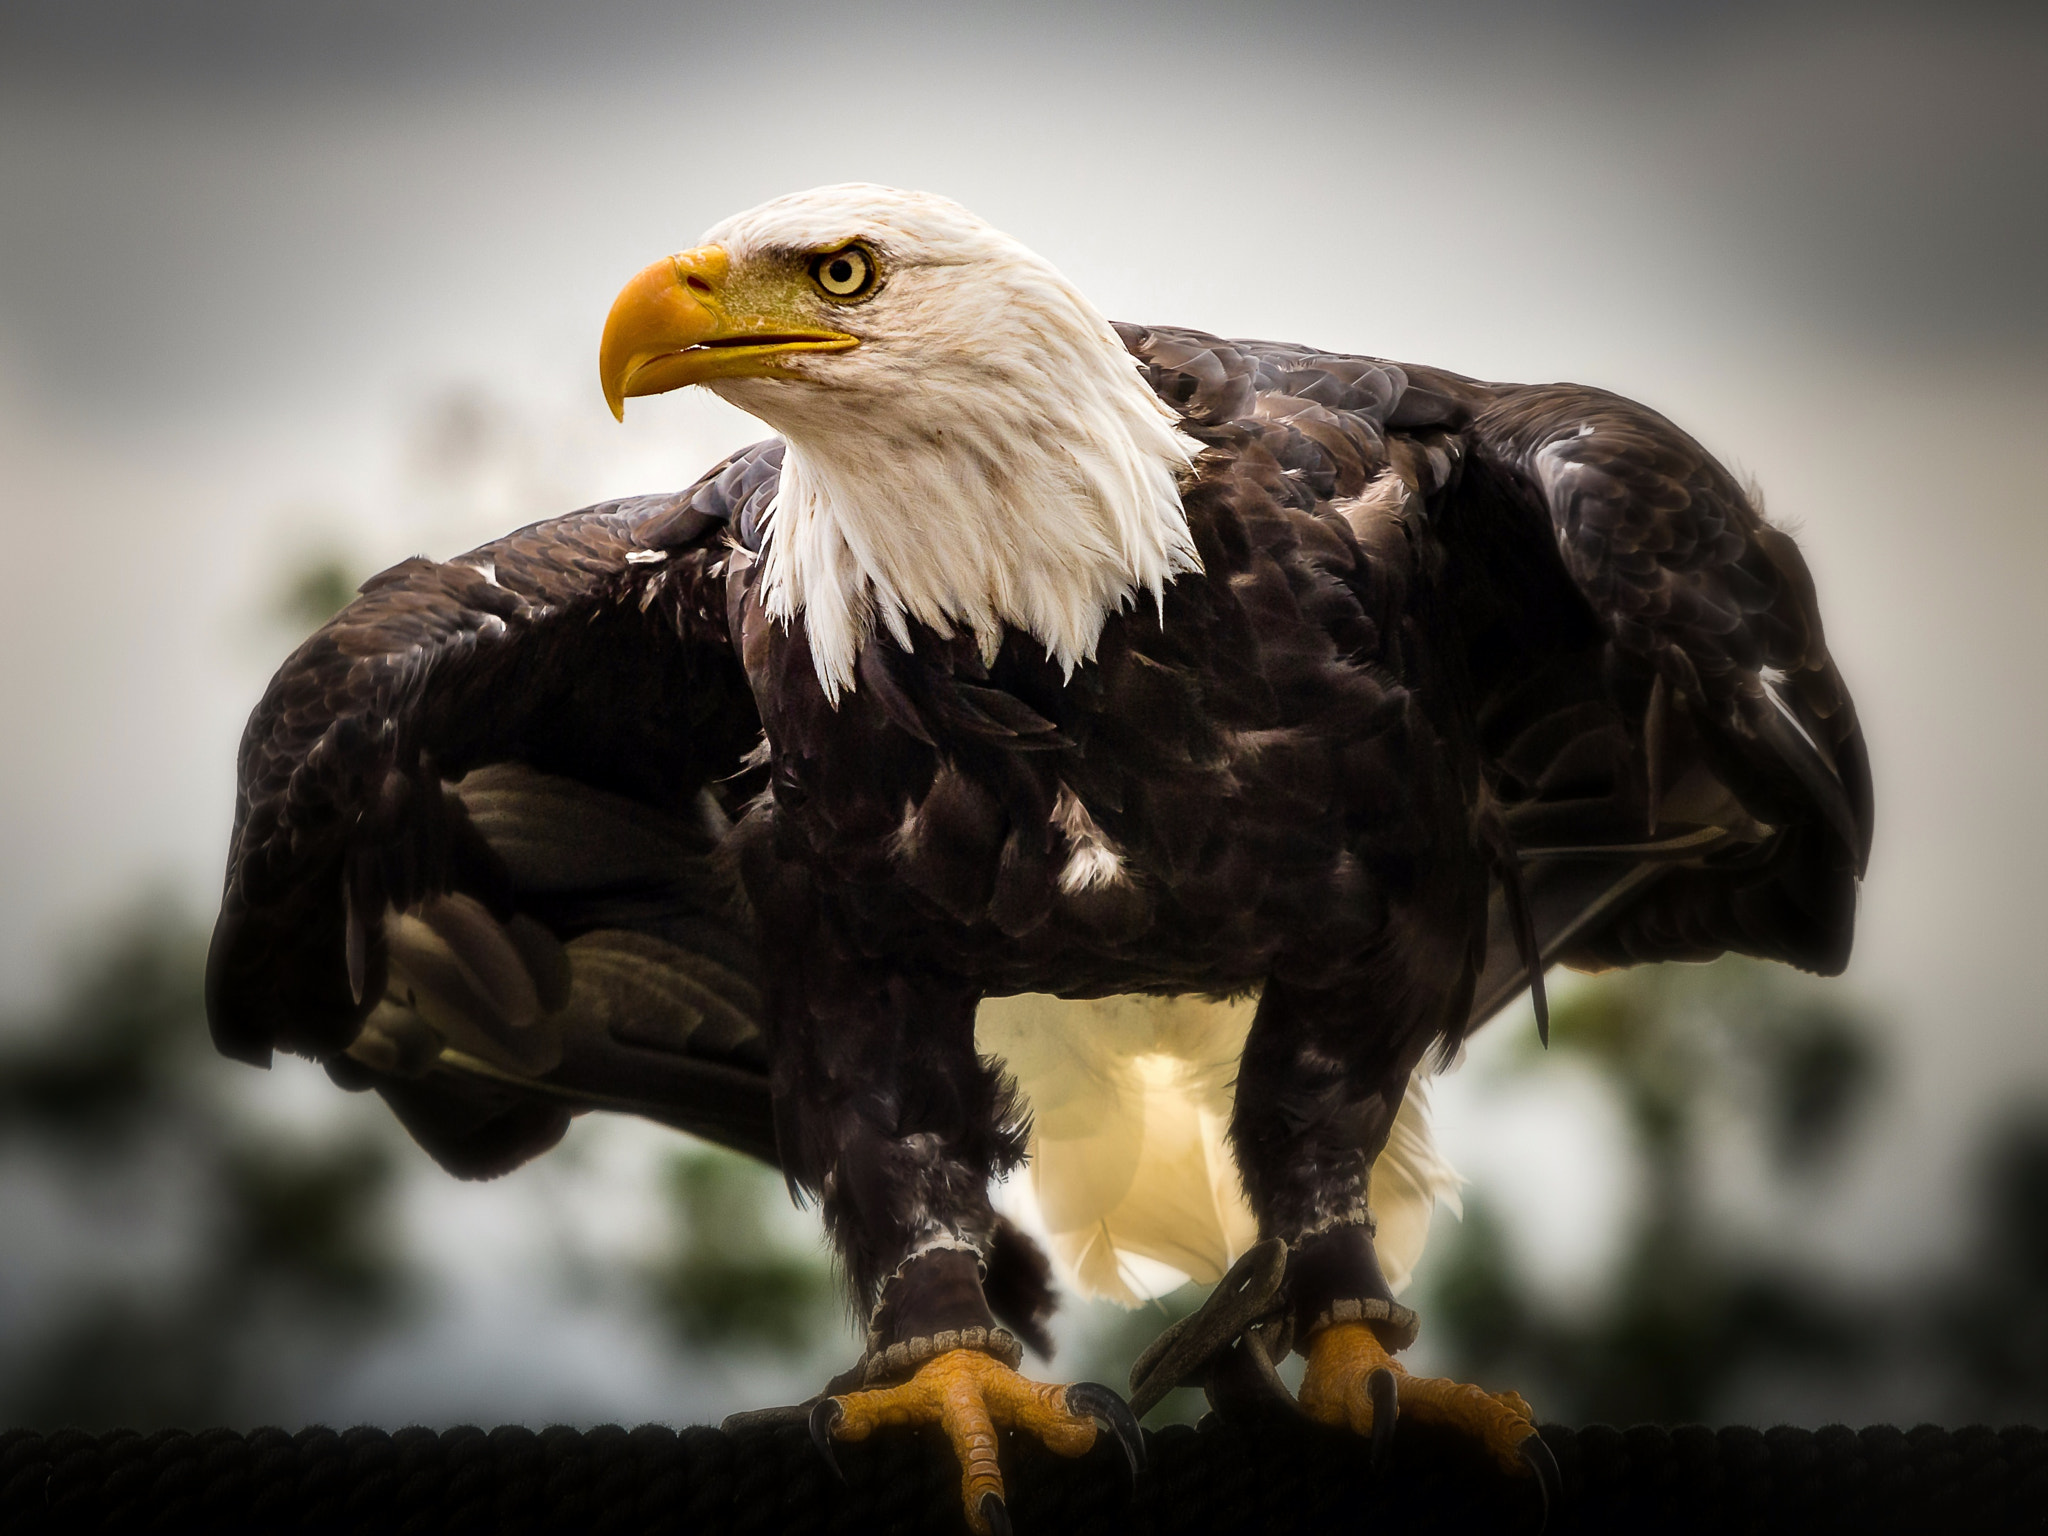 Photograph Bald Eagle by Hubertus Theile on 500px